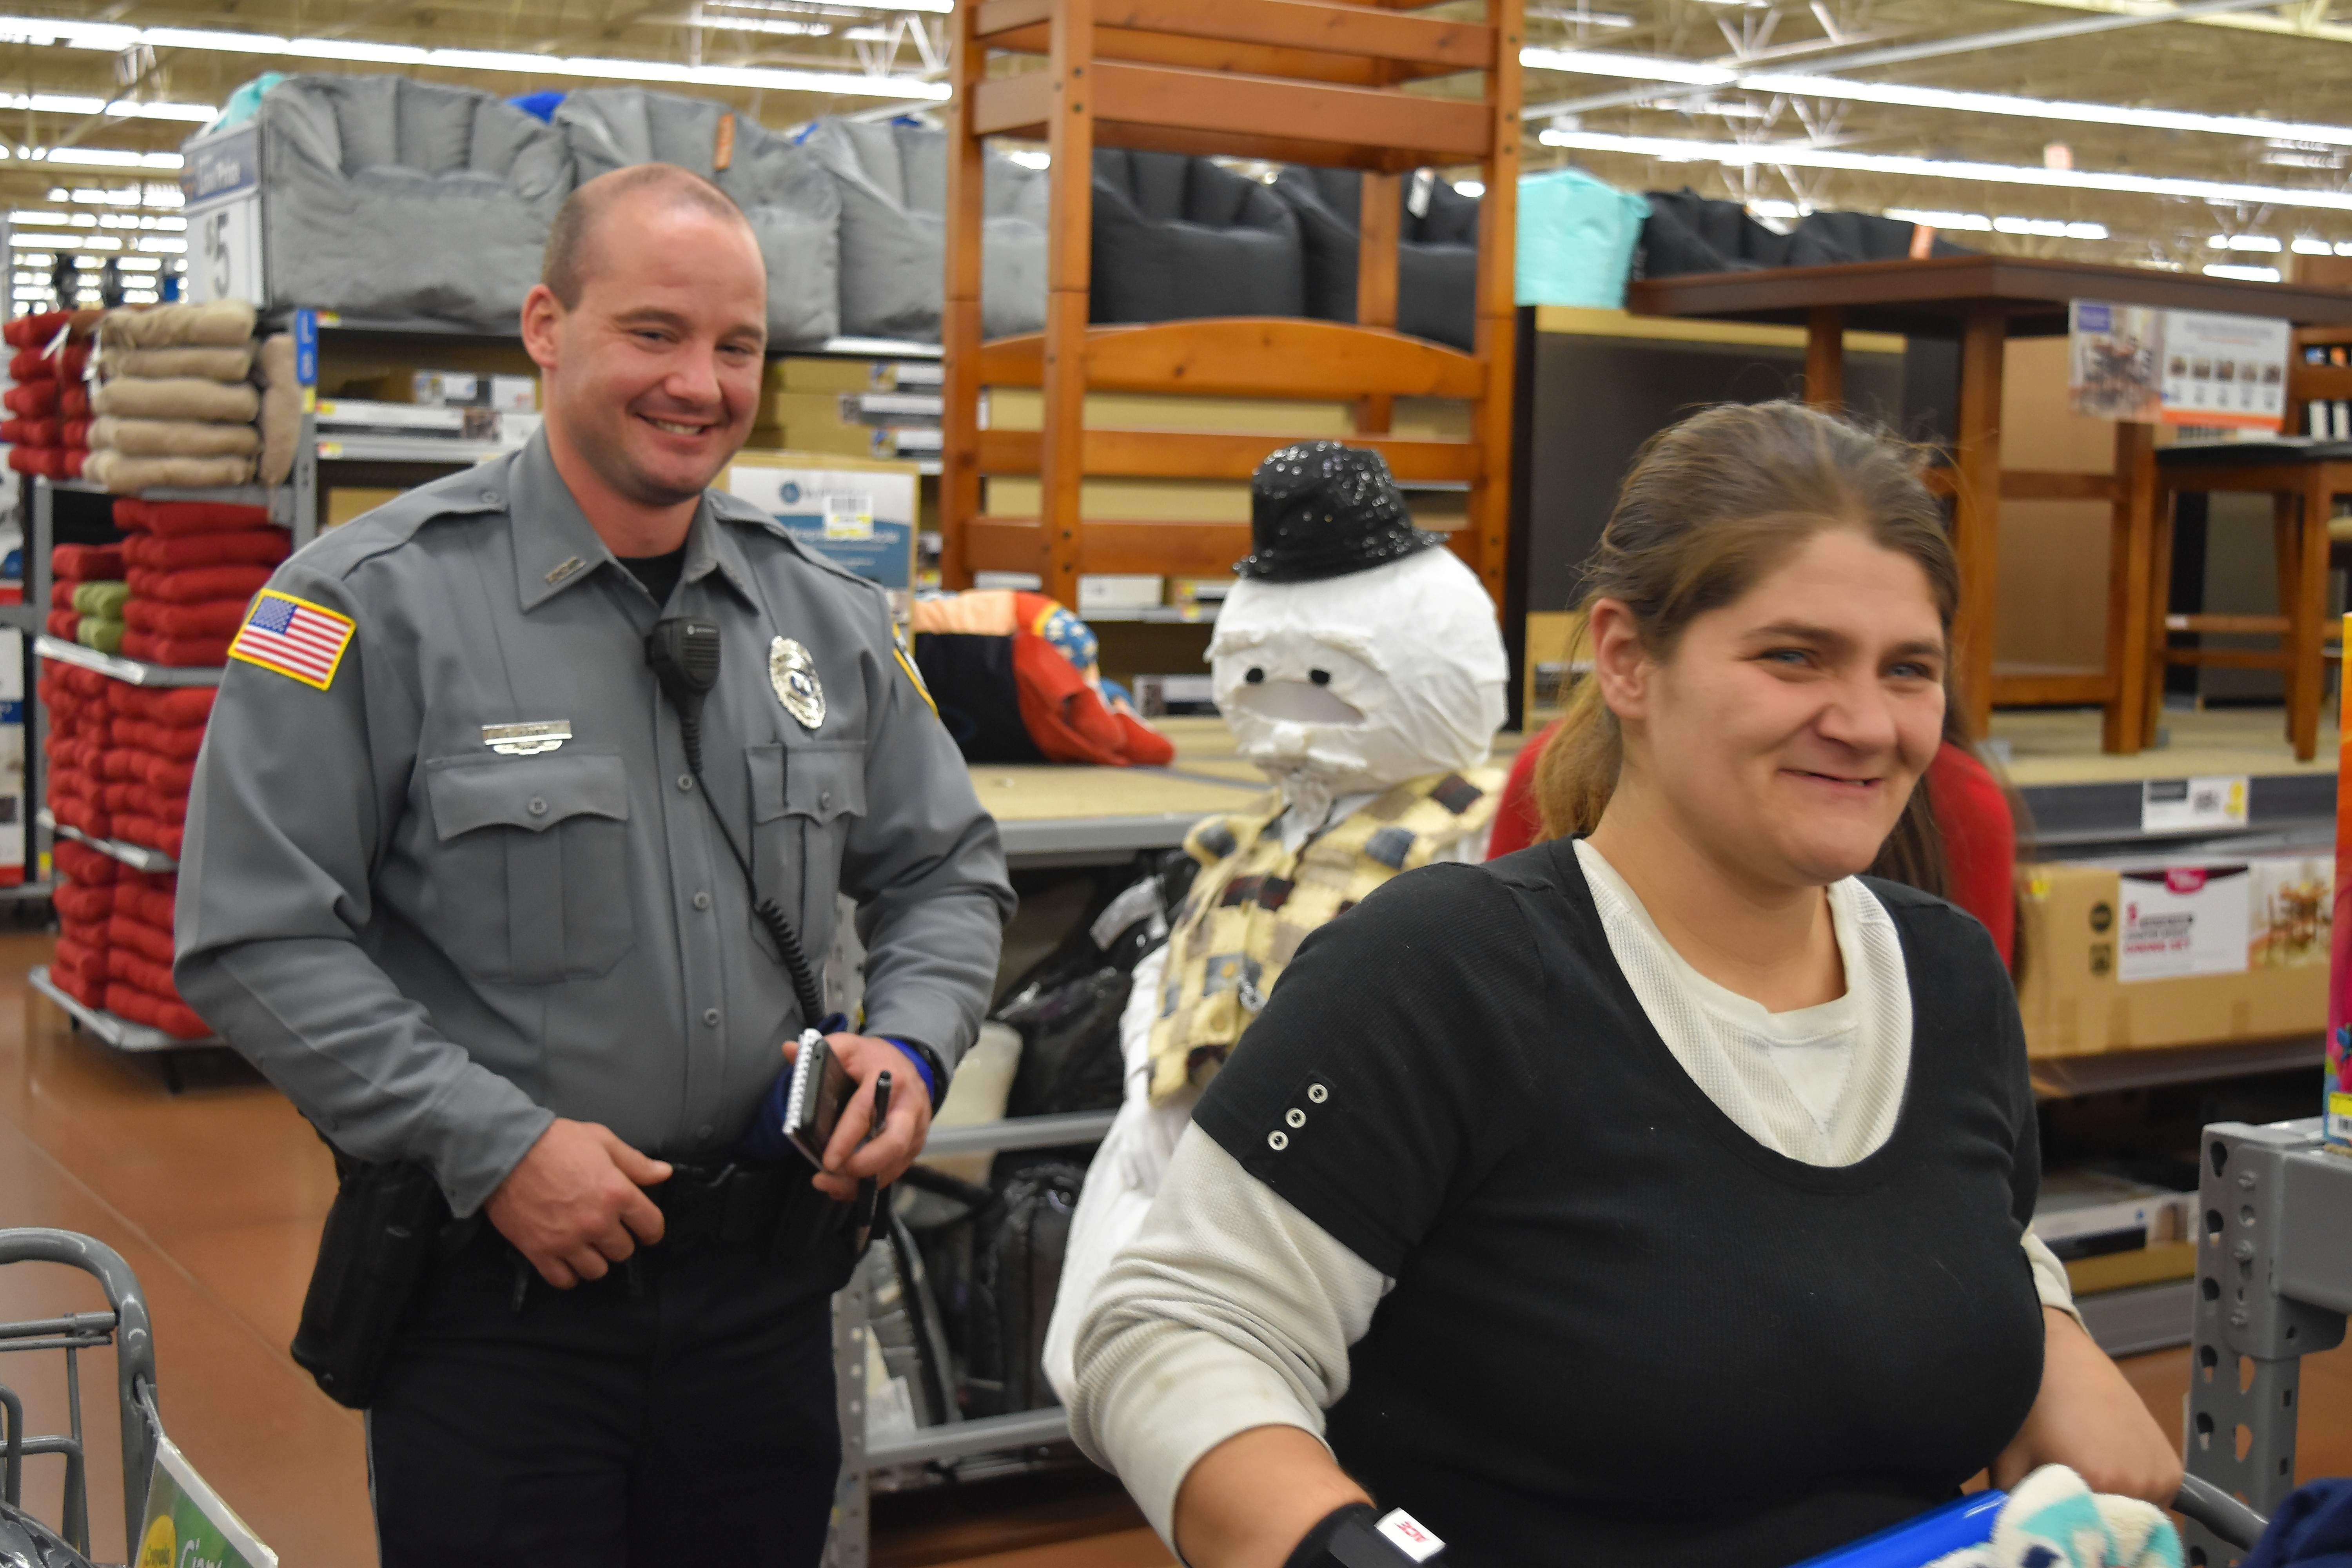 Harrisburg Police Department Officer Eric Gott during Shop With a Cop Saturday at Harrisburg's Wal-Mart.